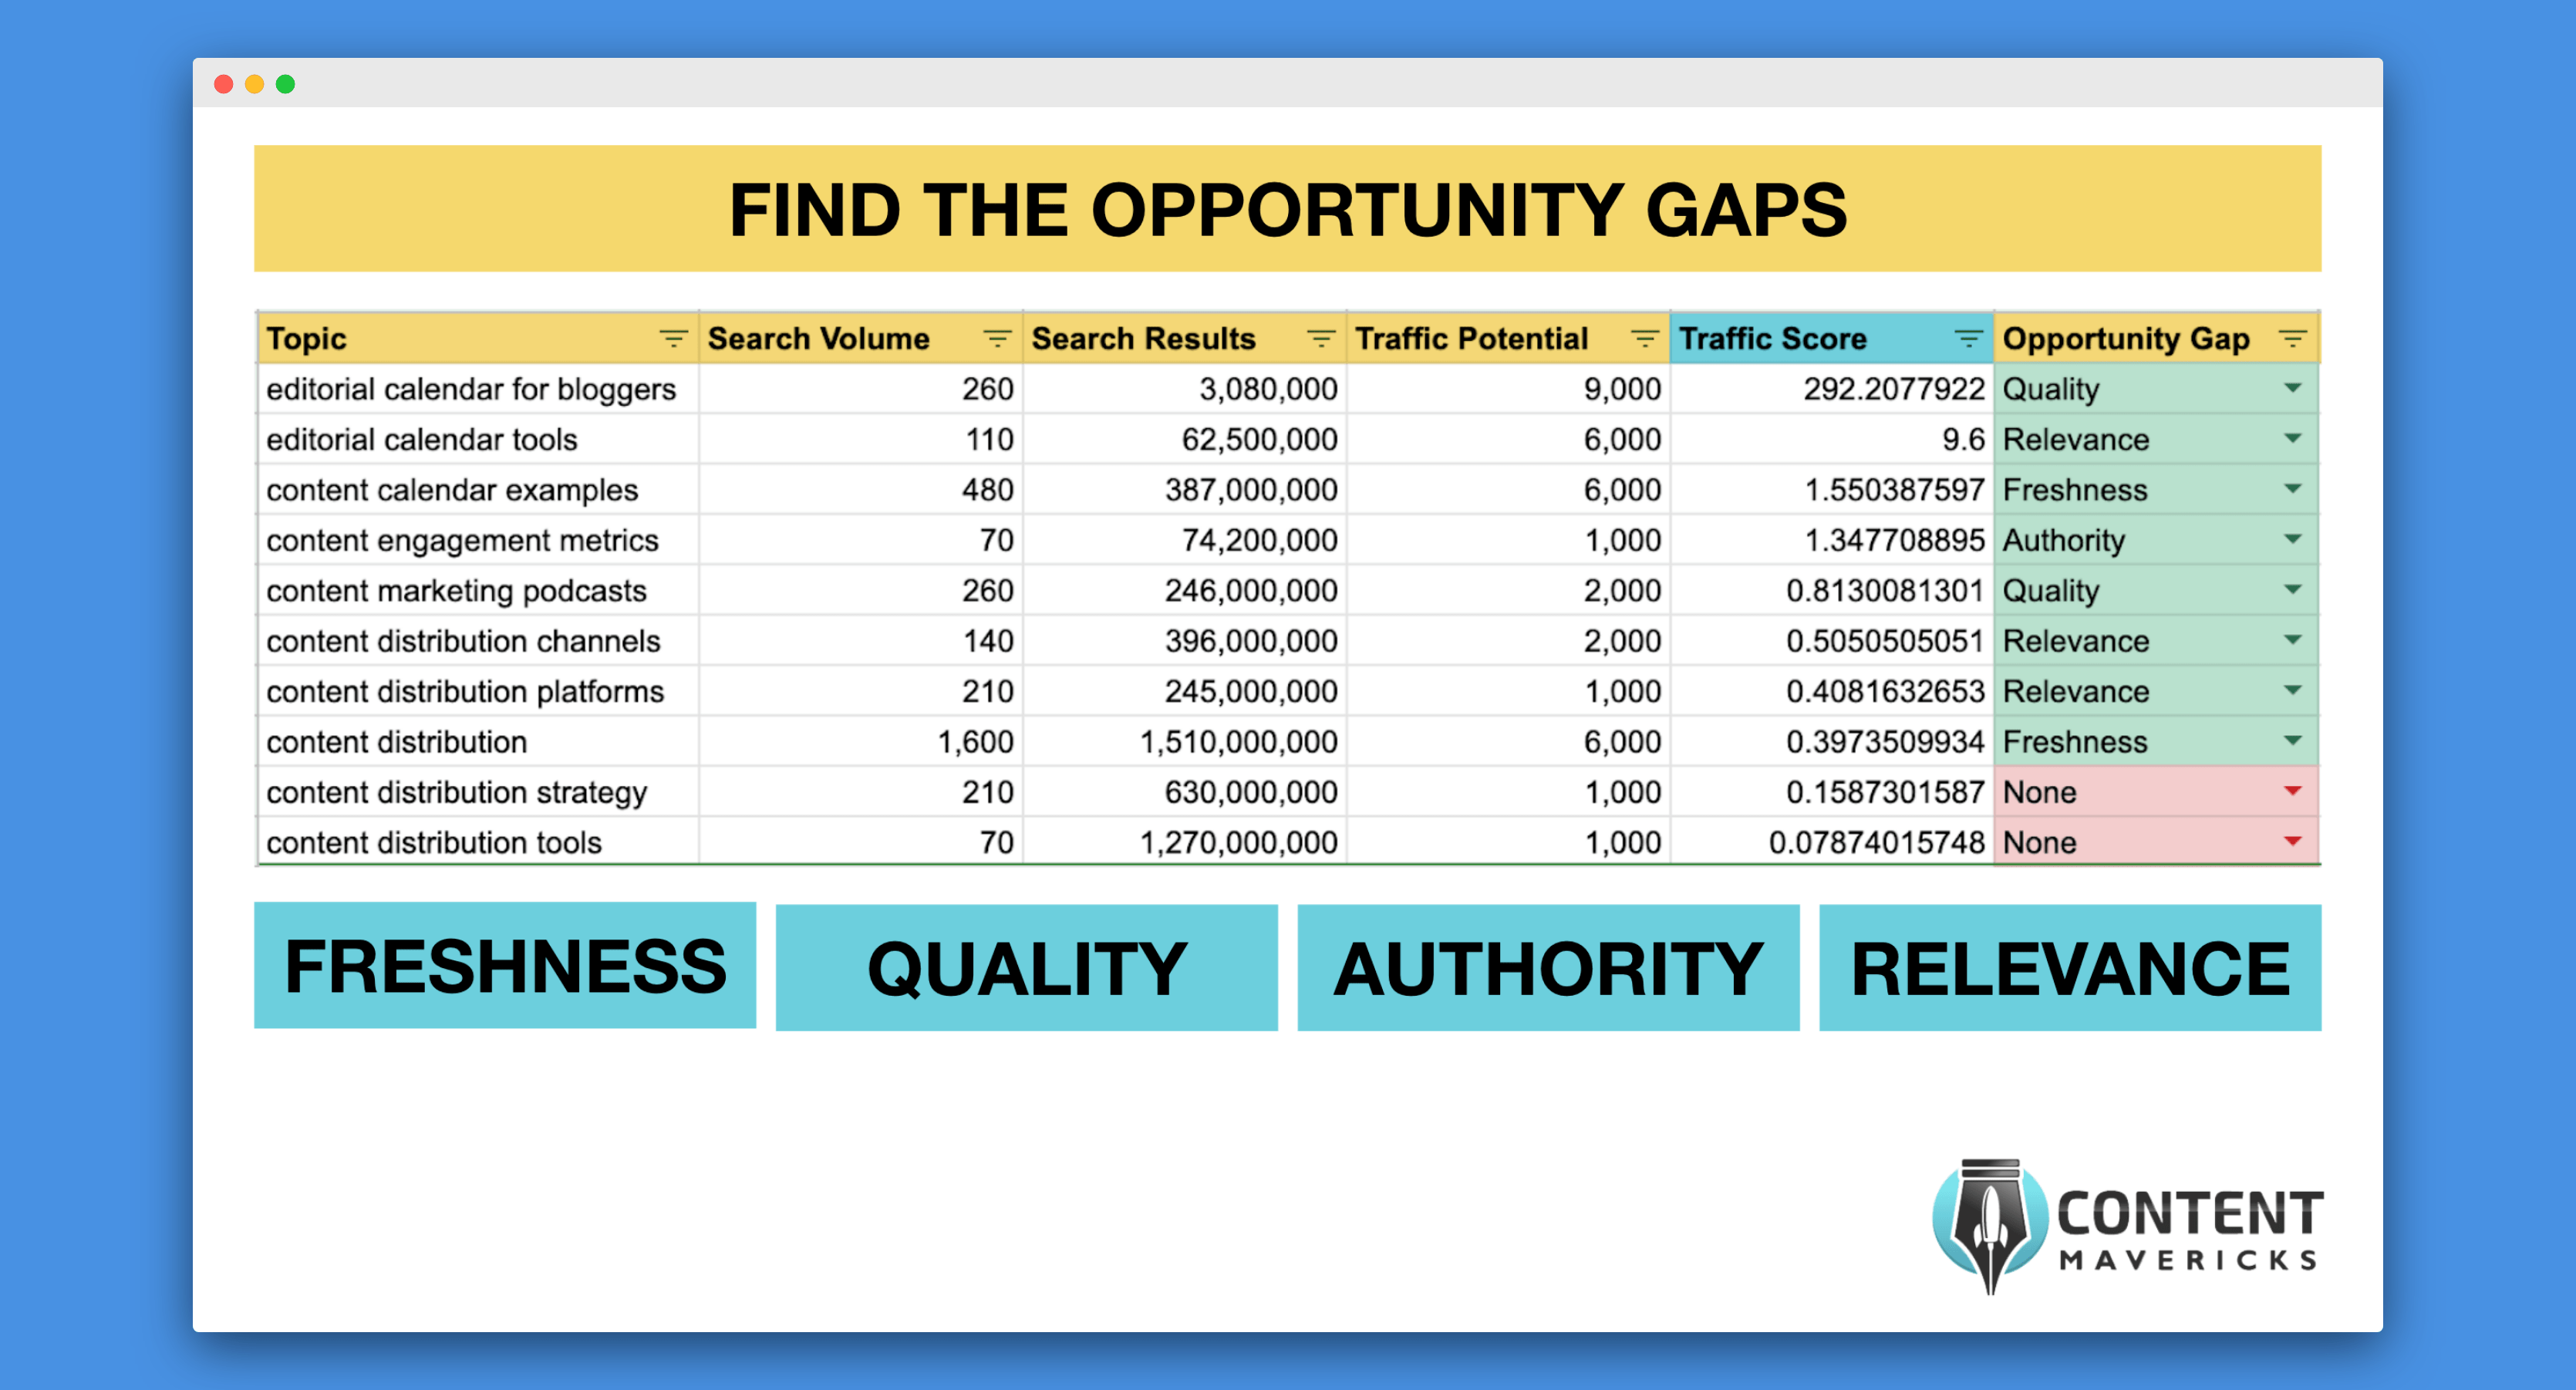 find opportunity gaps image